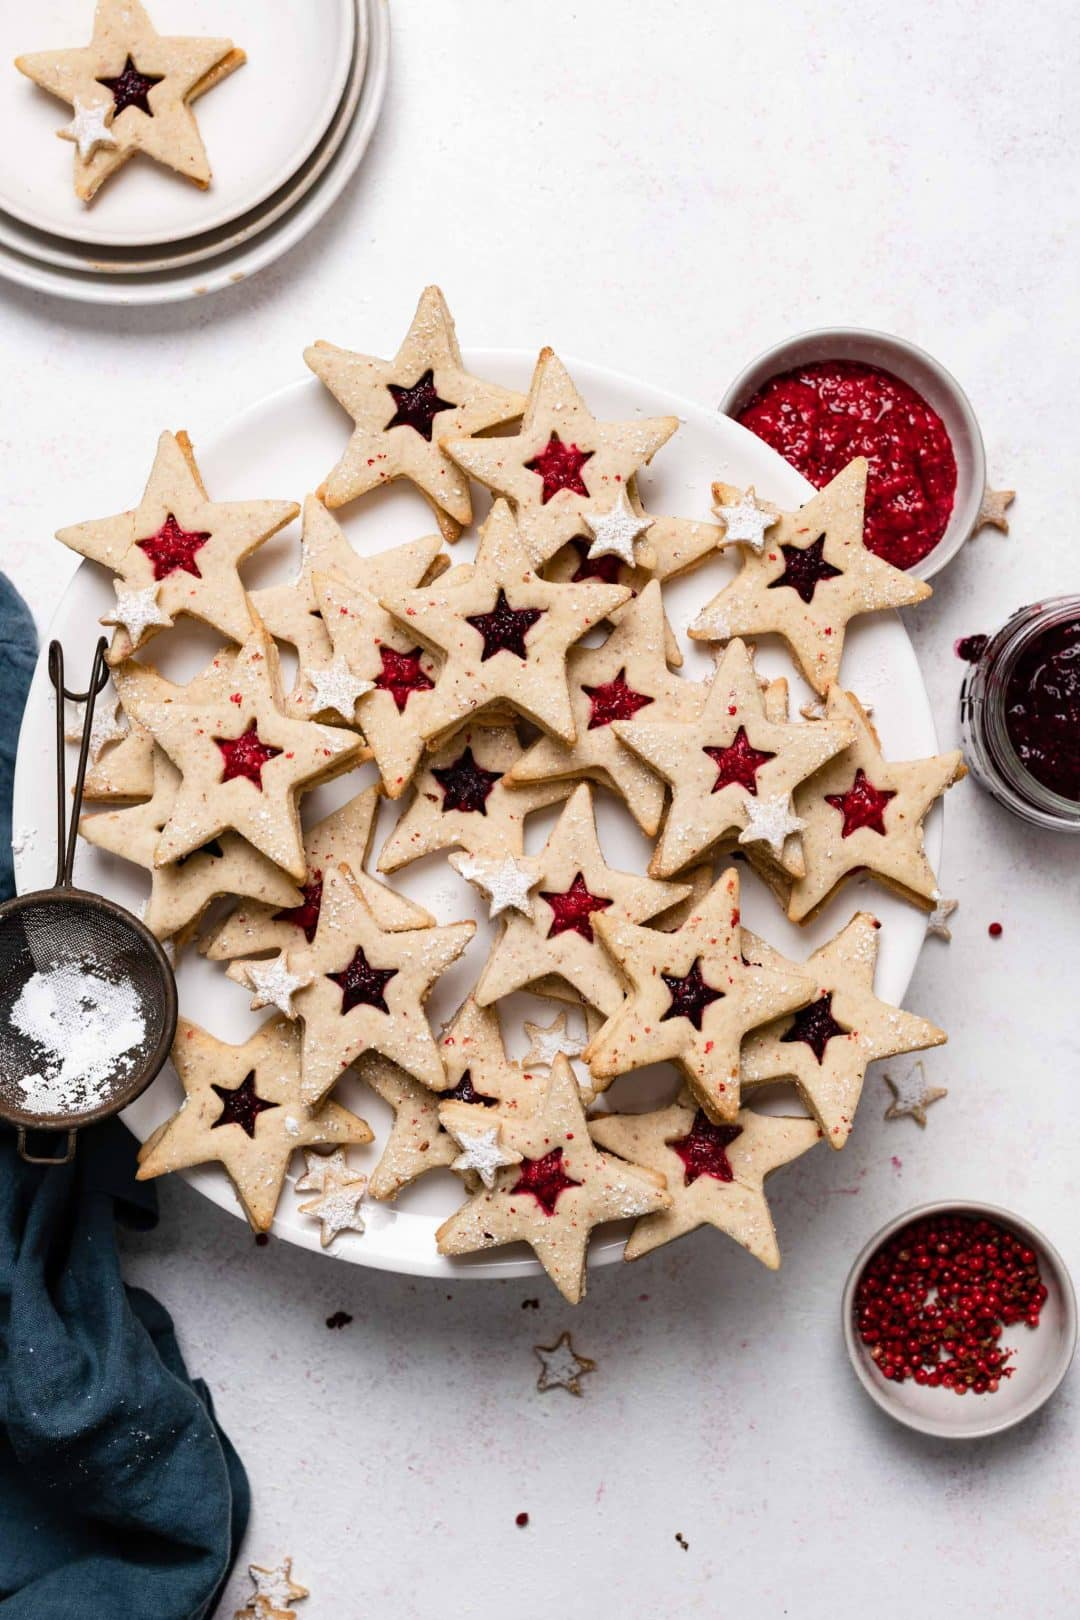 Linzer Cookies with fruit preserves and pink peppercorns